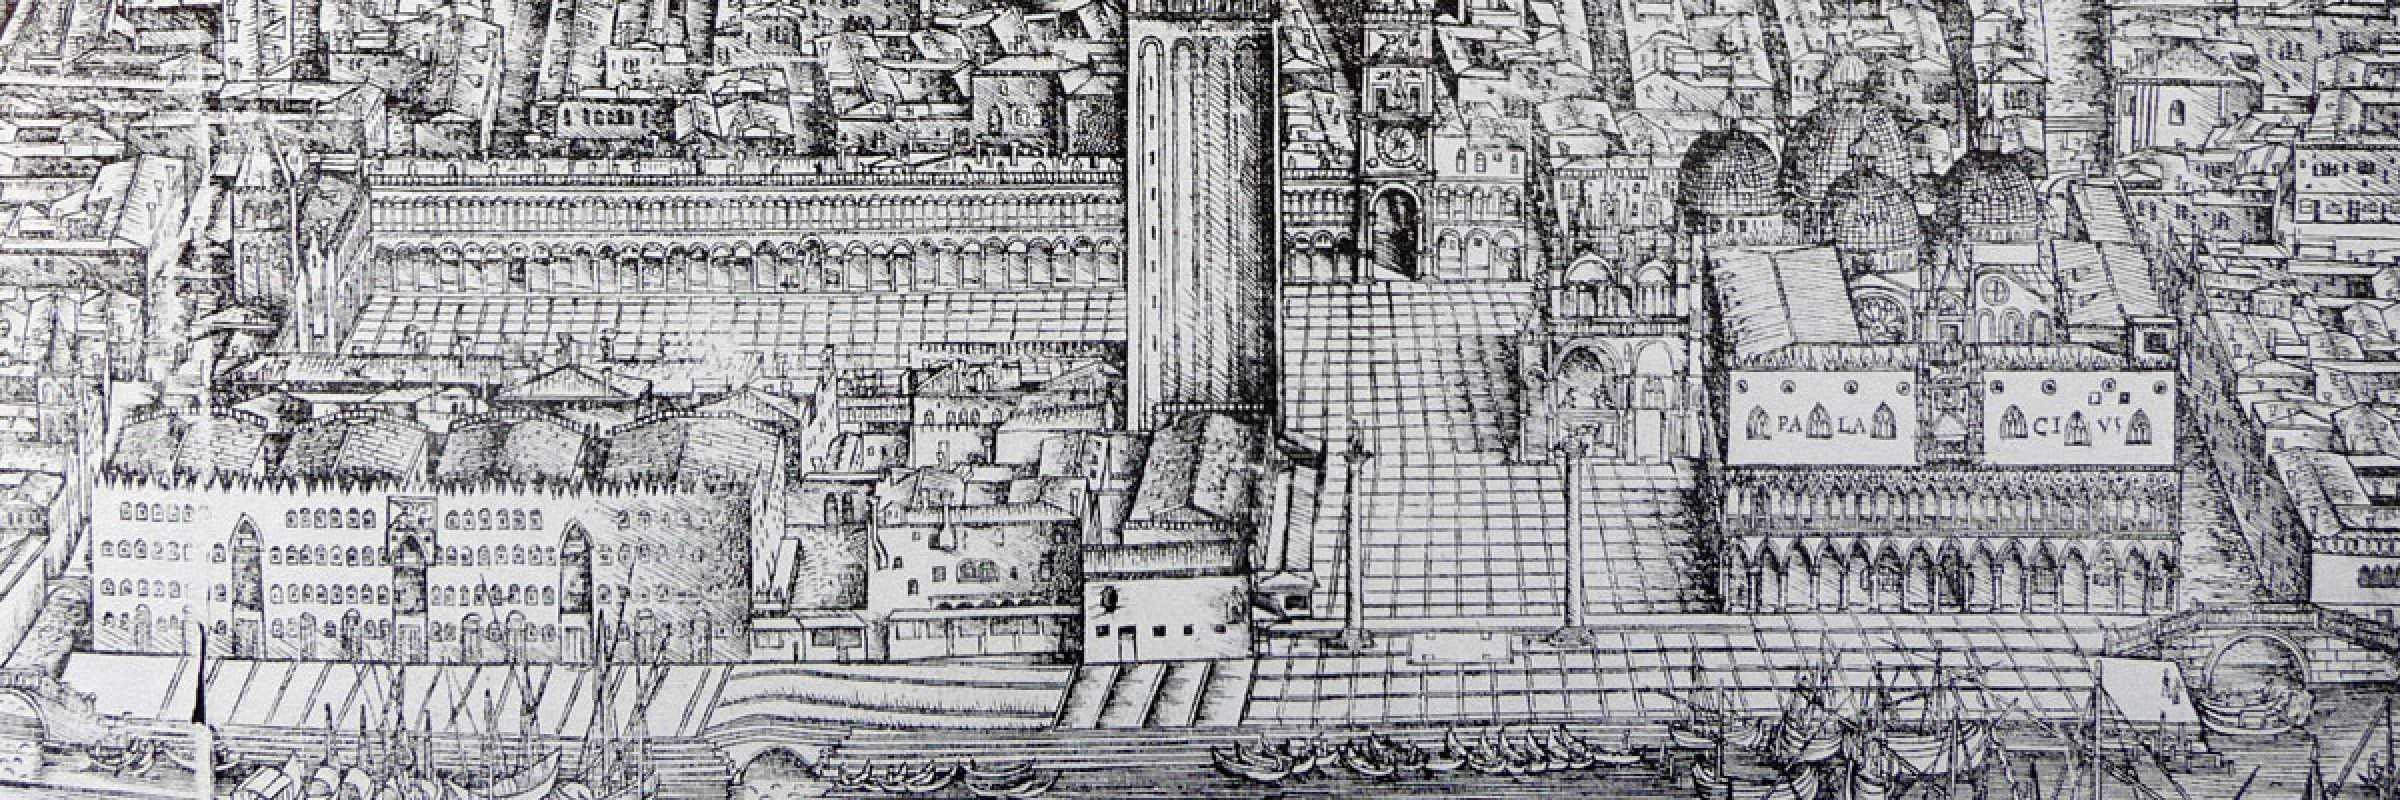 Ancient image of Piazza San Marco.